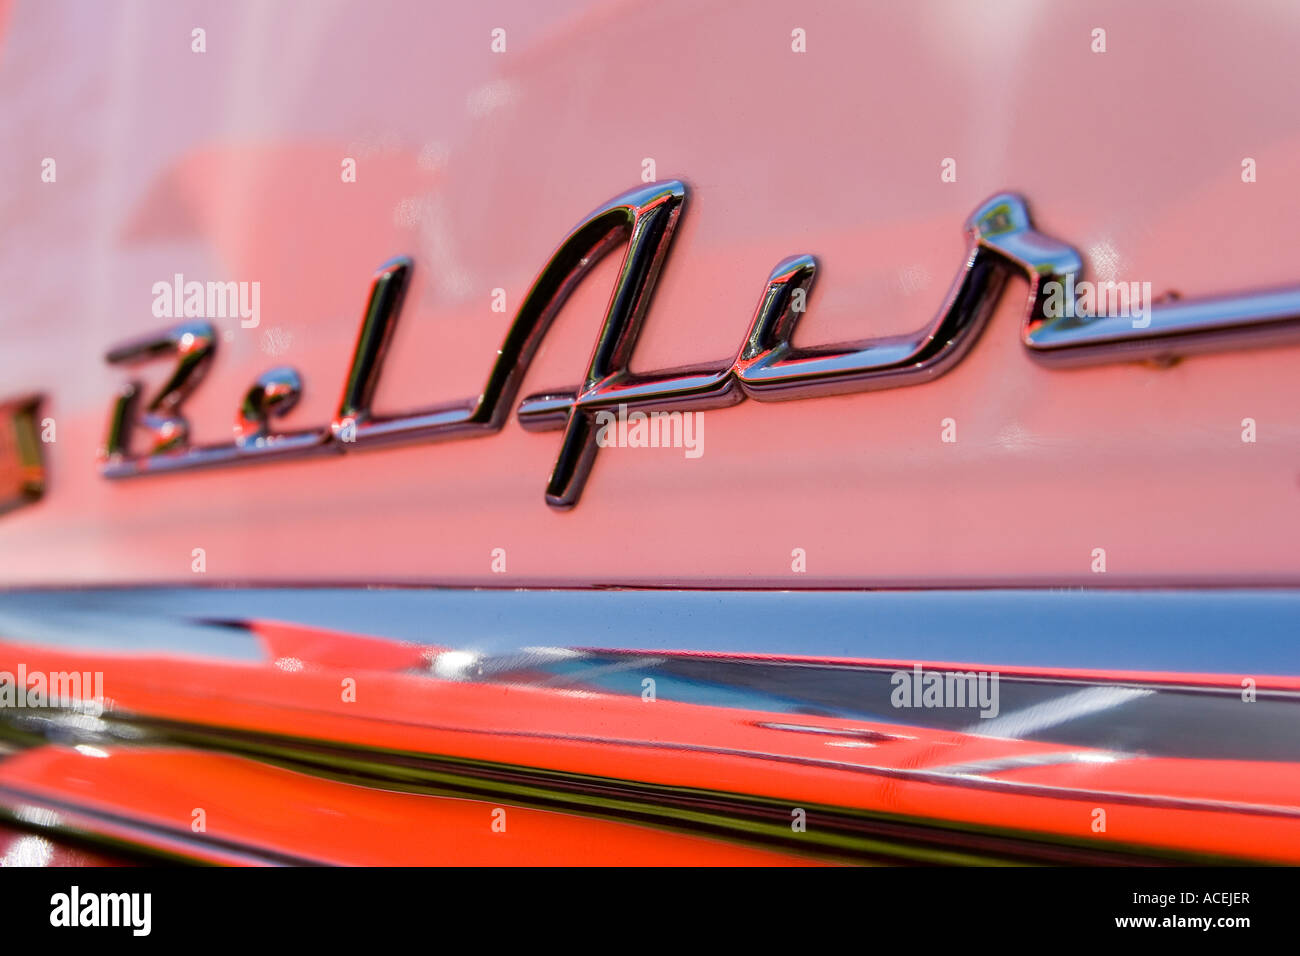 Close up the Chevrolet Bel Air label in chrome on a red and white classic car at an auto show - Stock Image